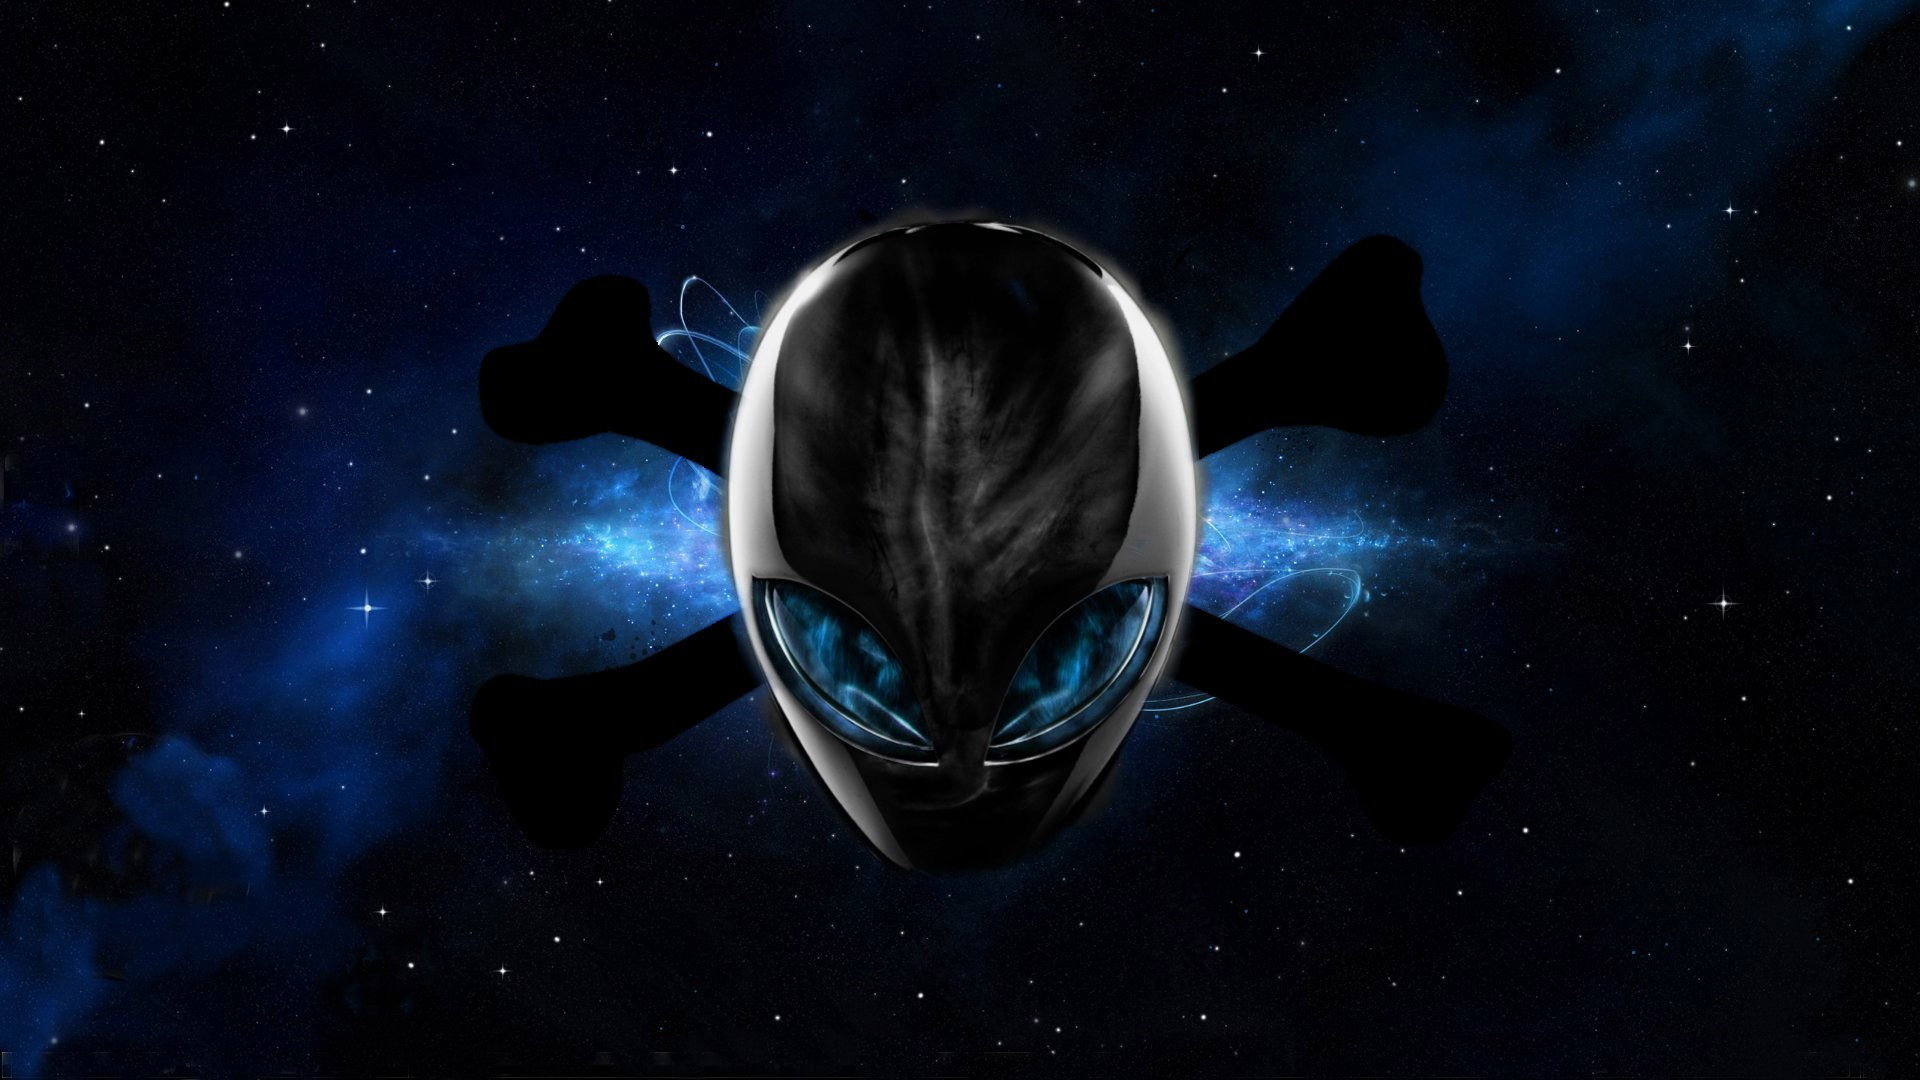 Alienware Wallpaper: Alienware Wallpaper 1920x1080 HD (80+ Images